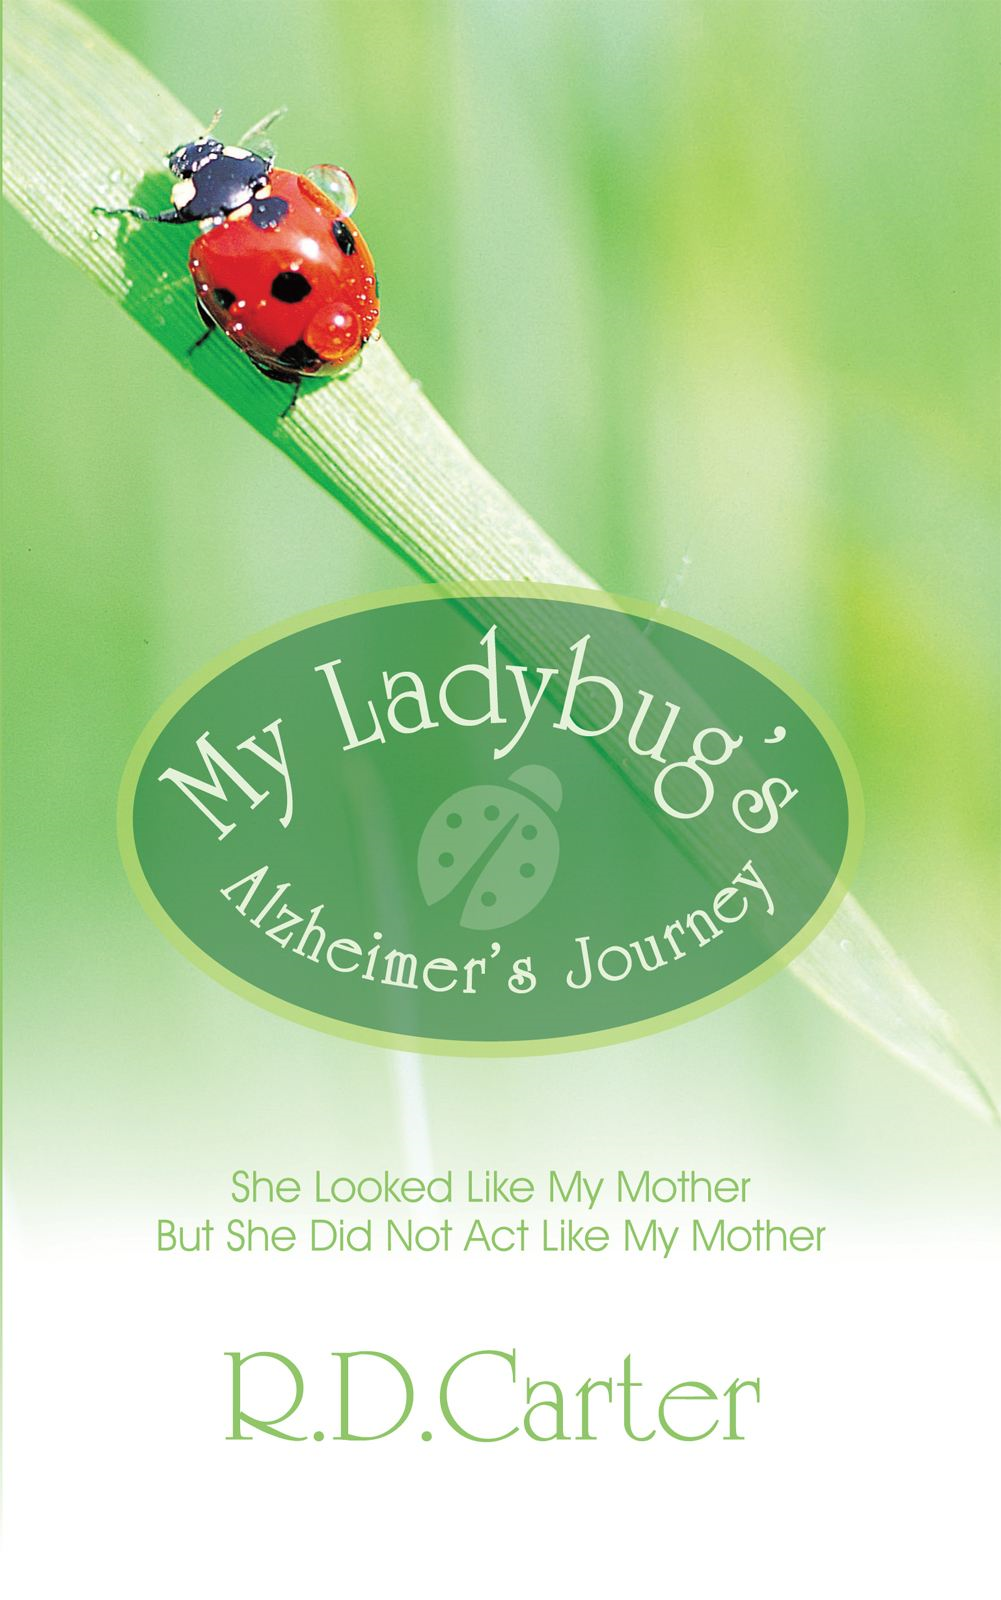 My Ladybug's Alzheimer's Journey By: R.D.Carter